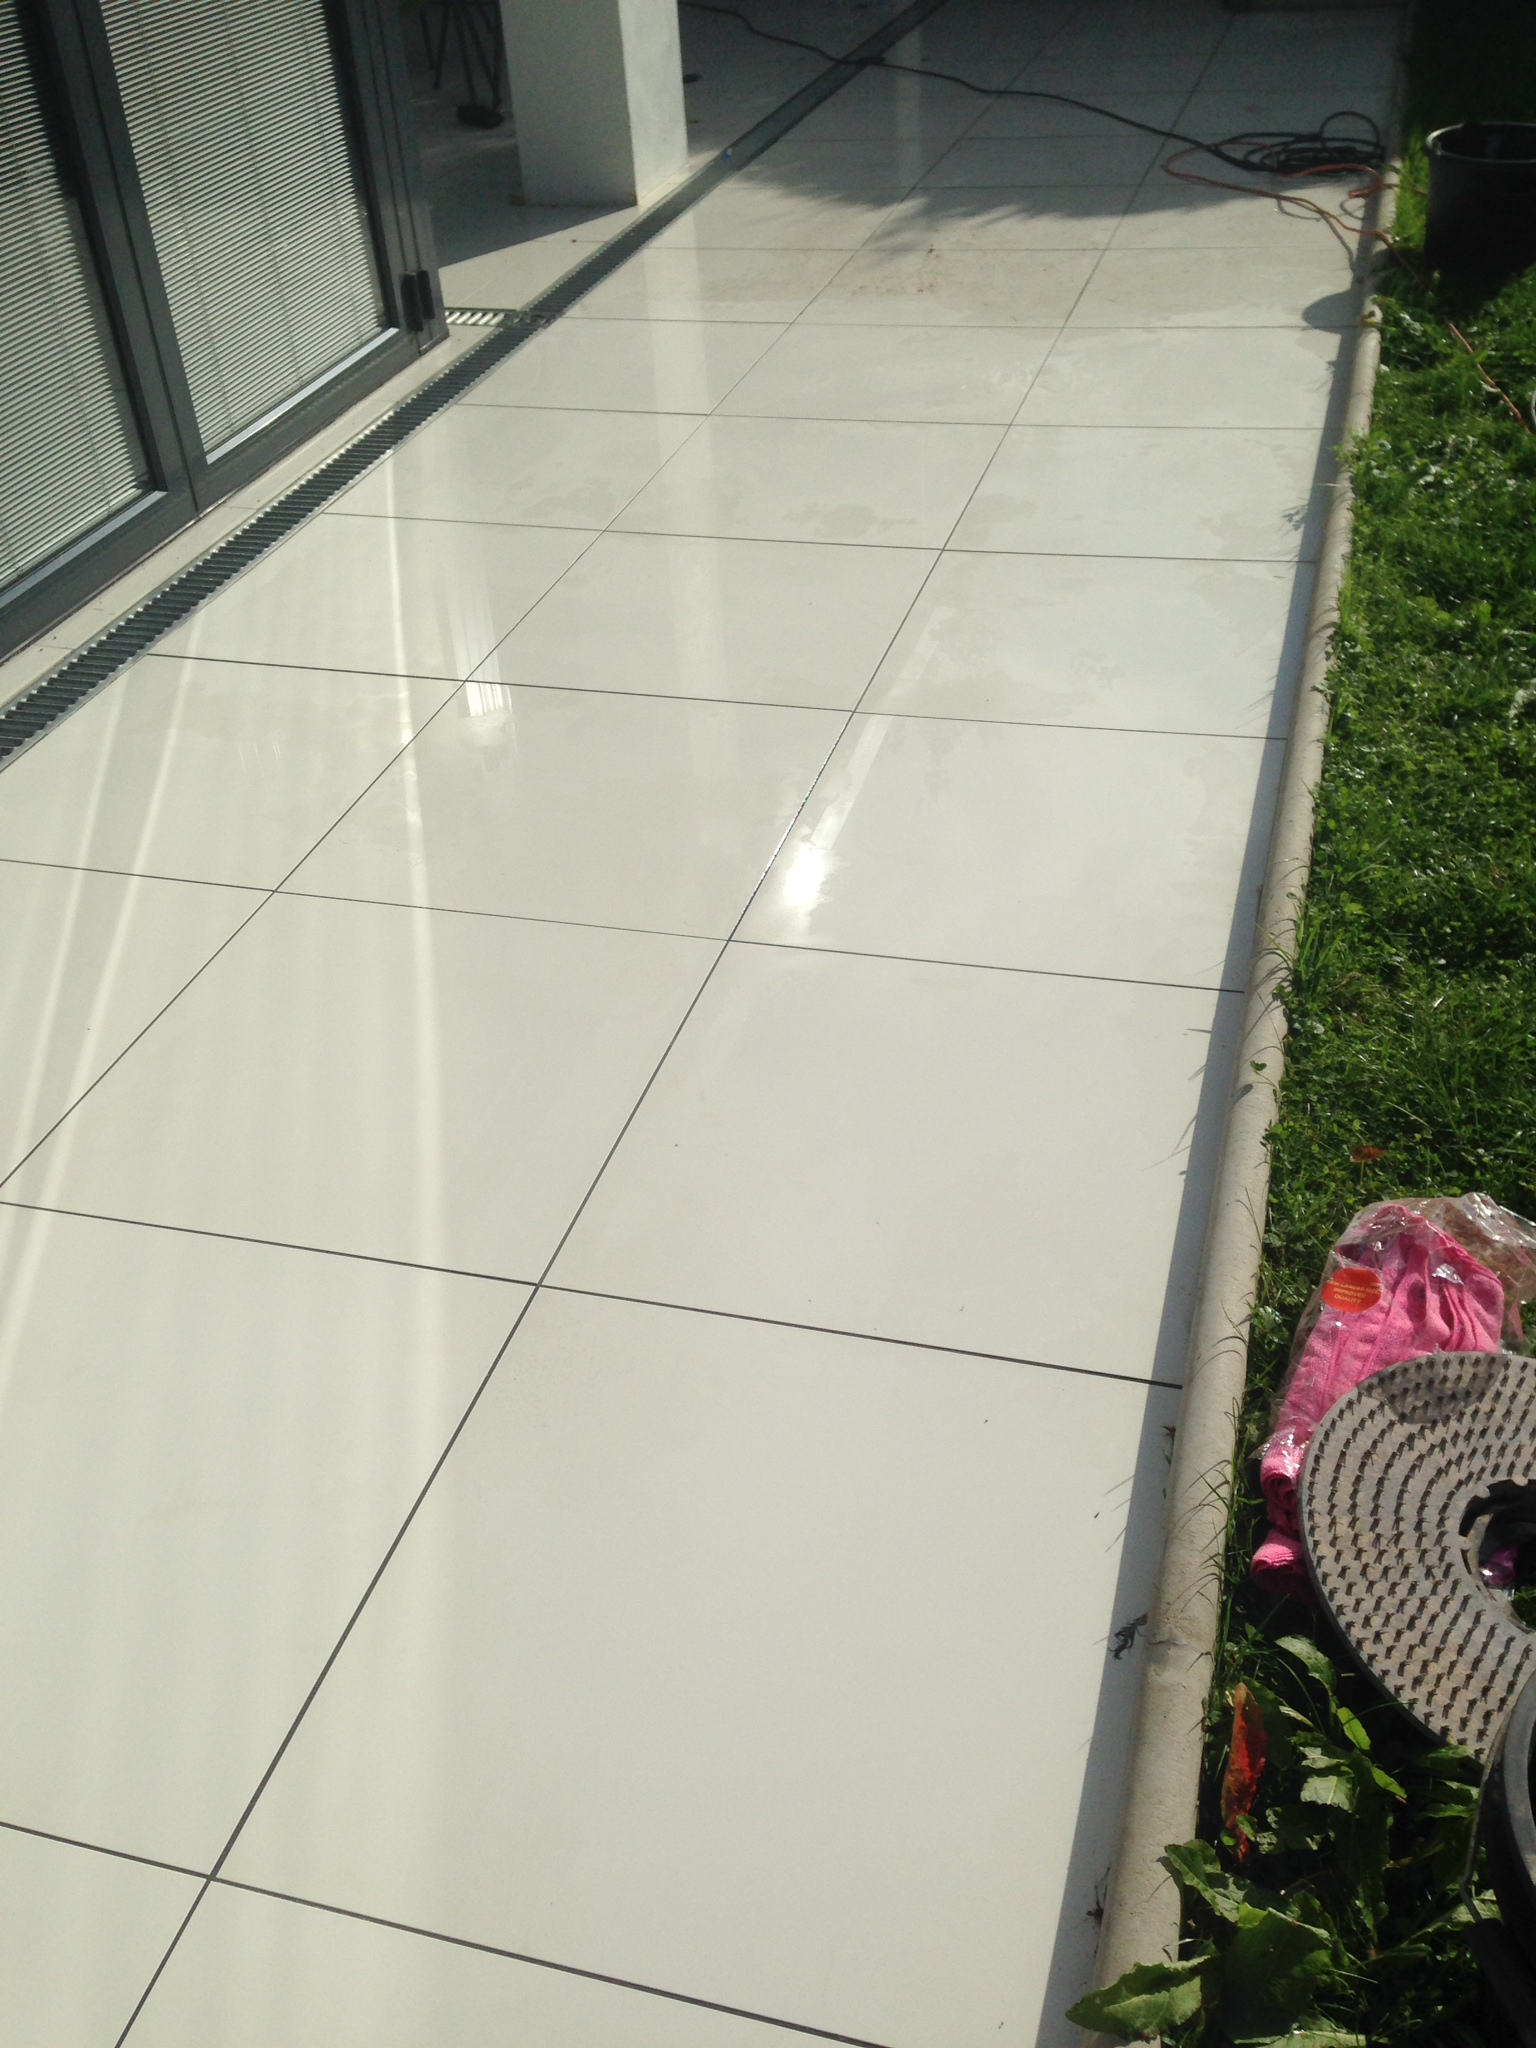 Porcelain Tiles East Surrey Tile Doctor - Are porcelain floor tiles slippery